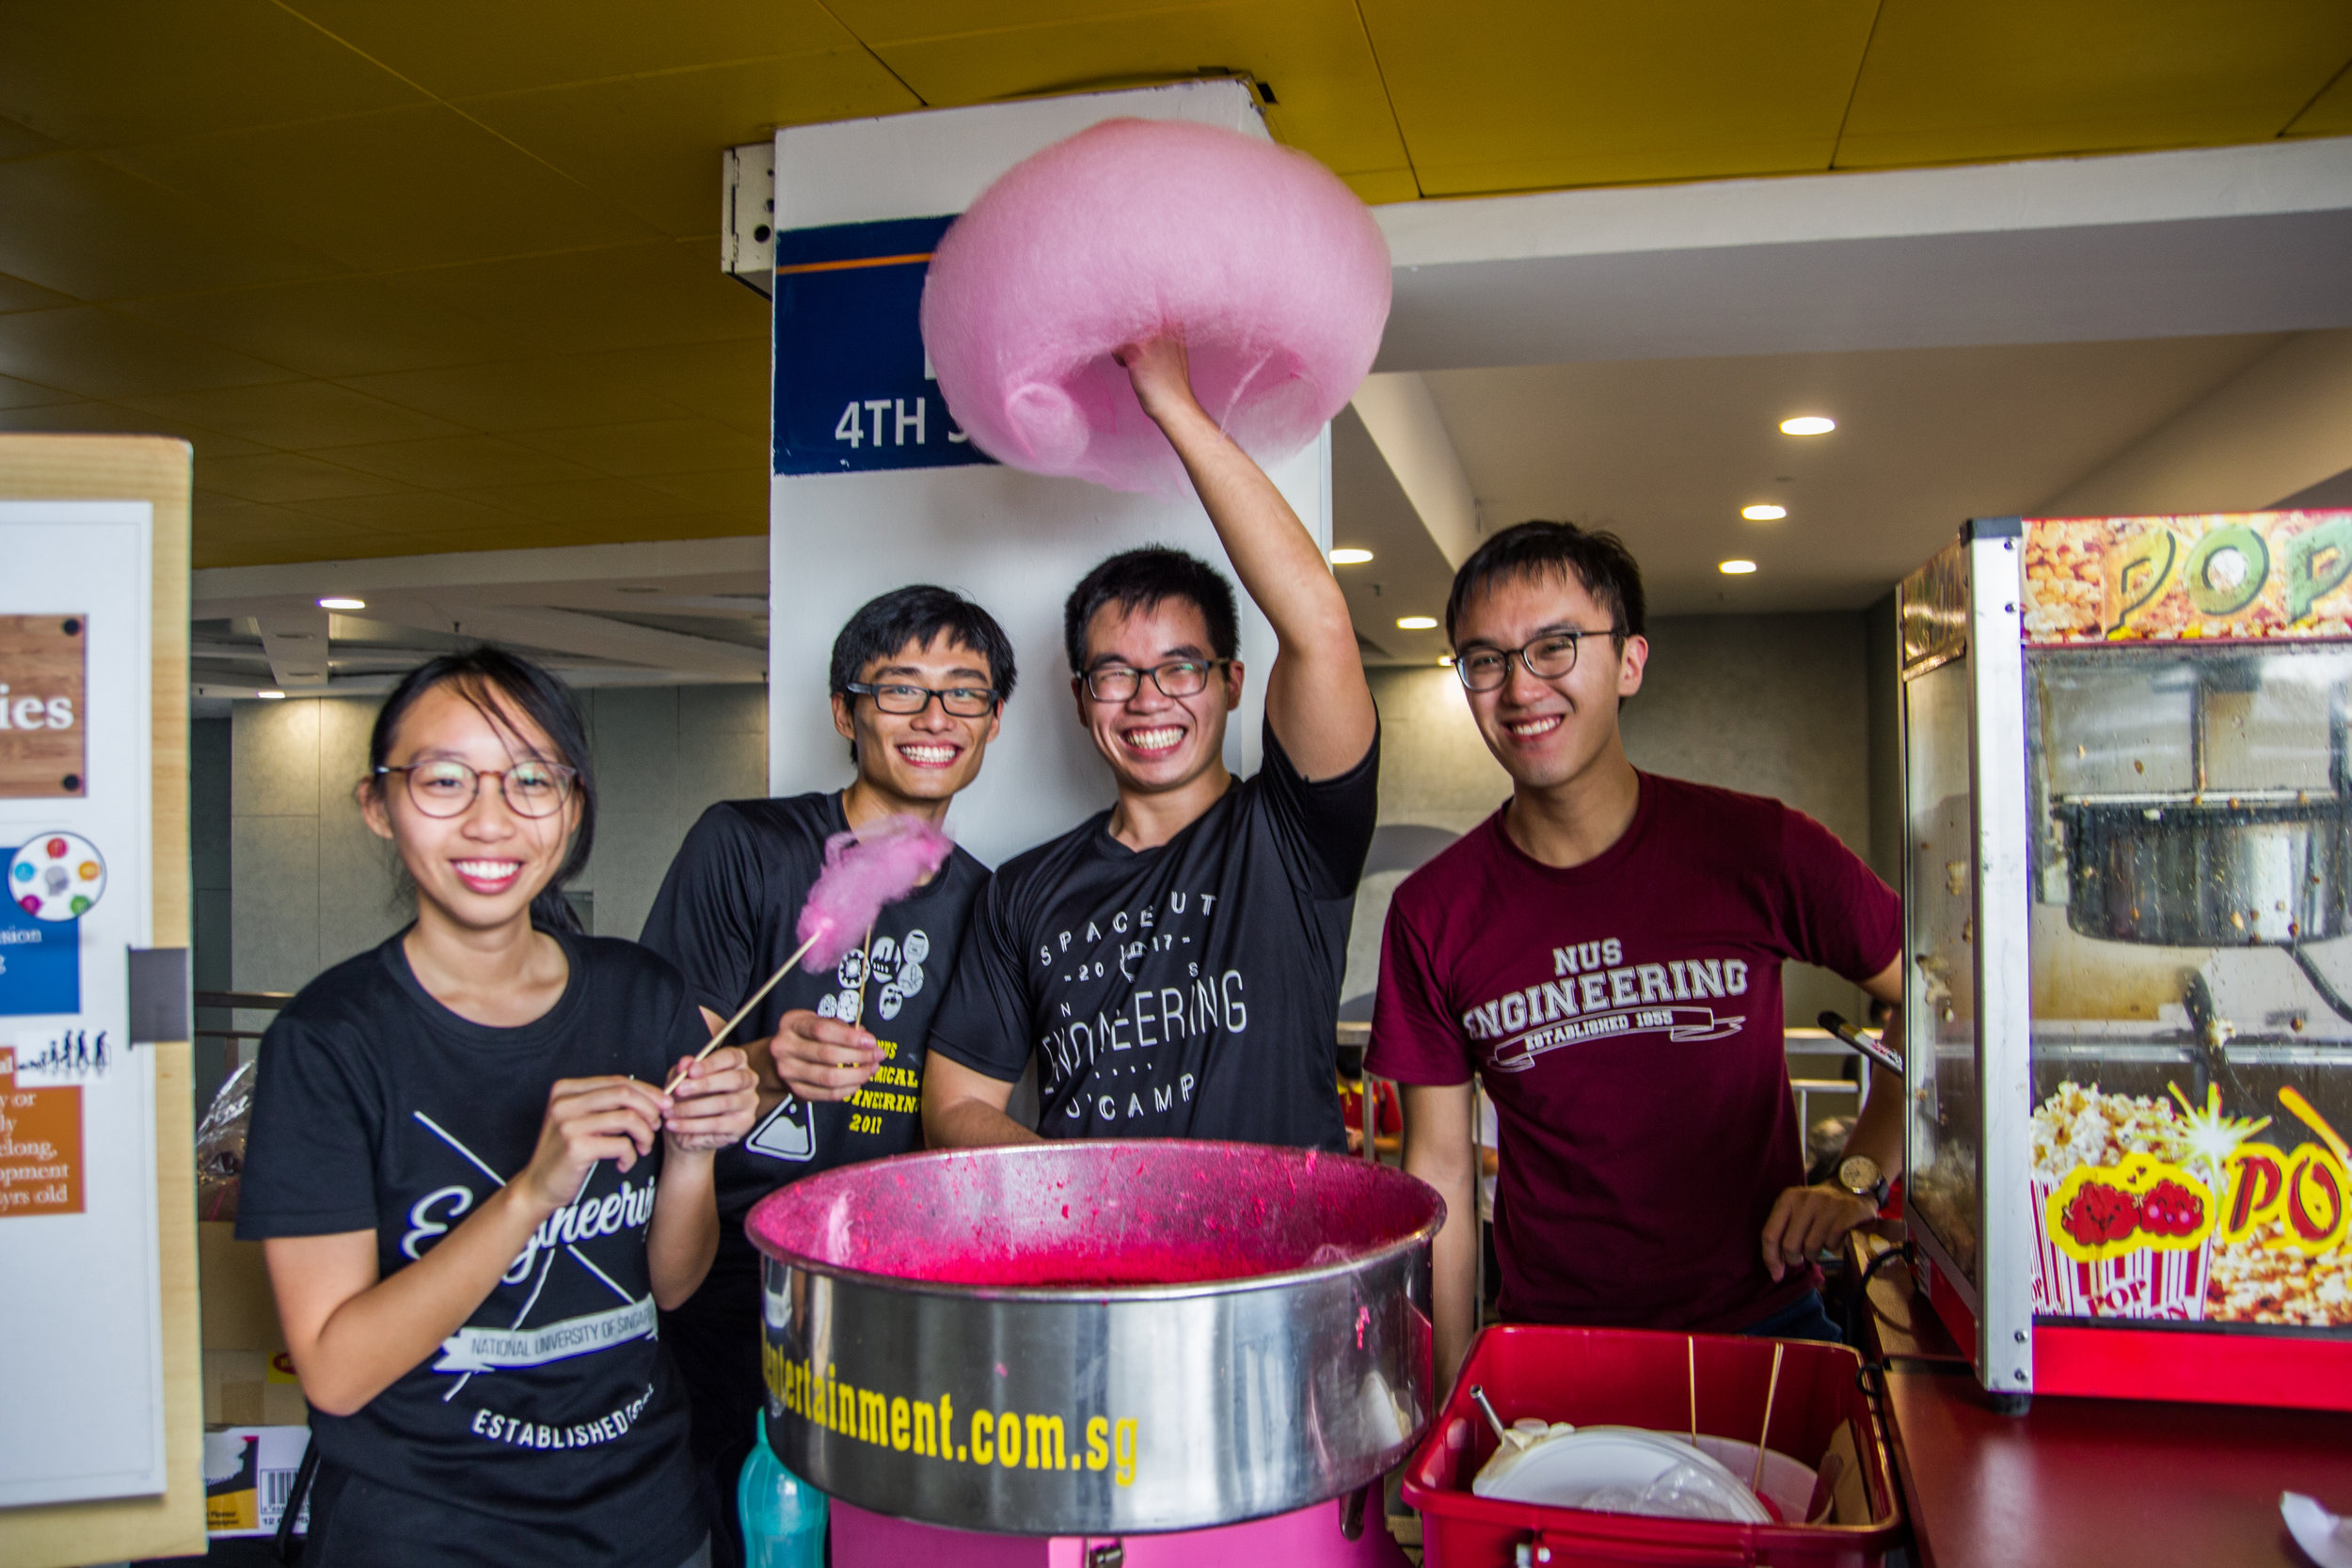 Cotton candy and popcorn booth!